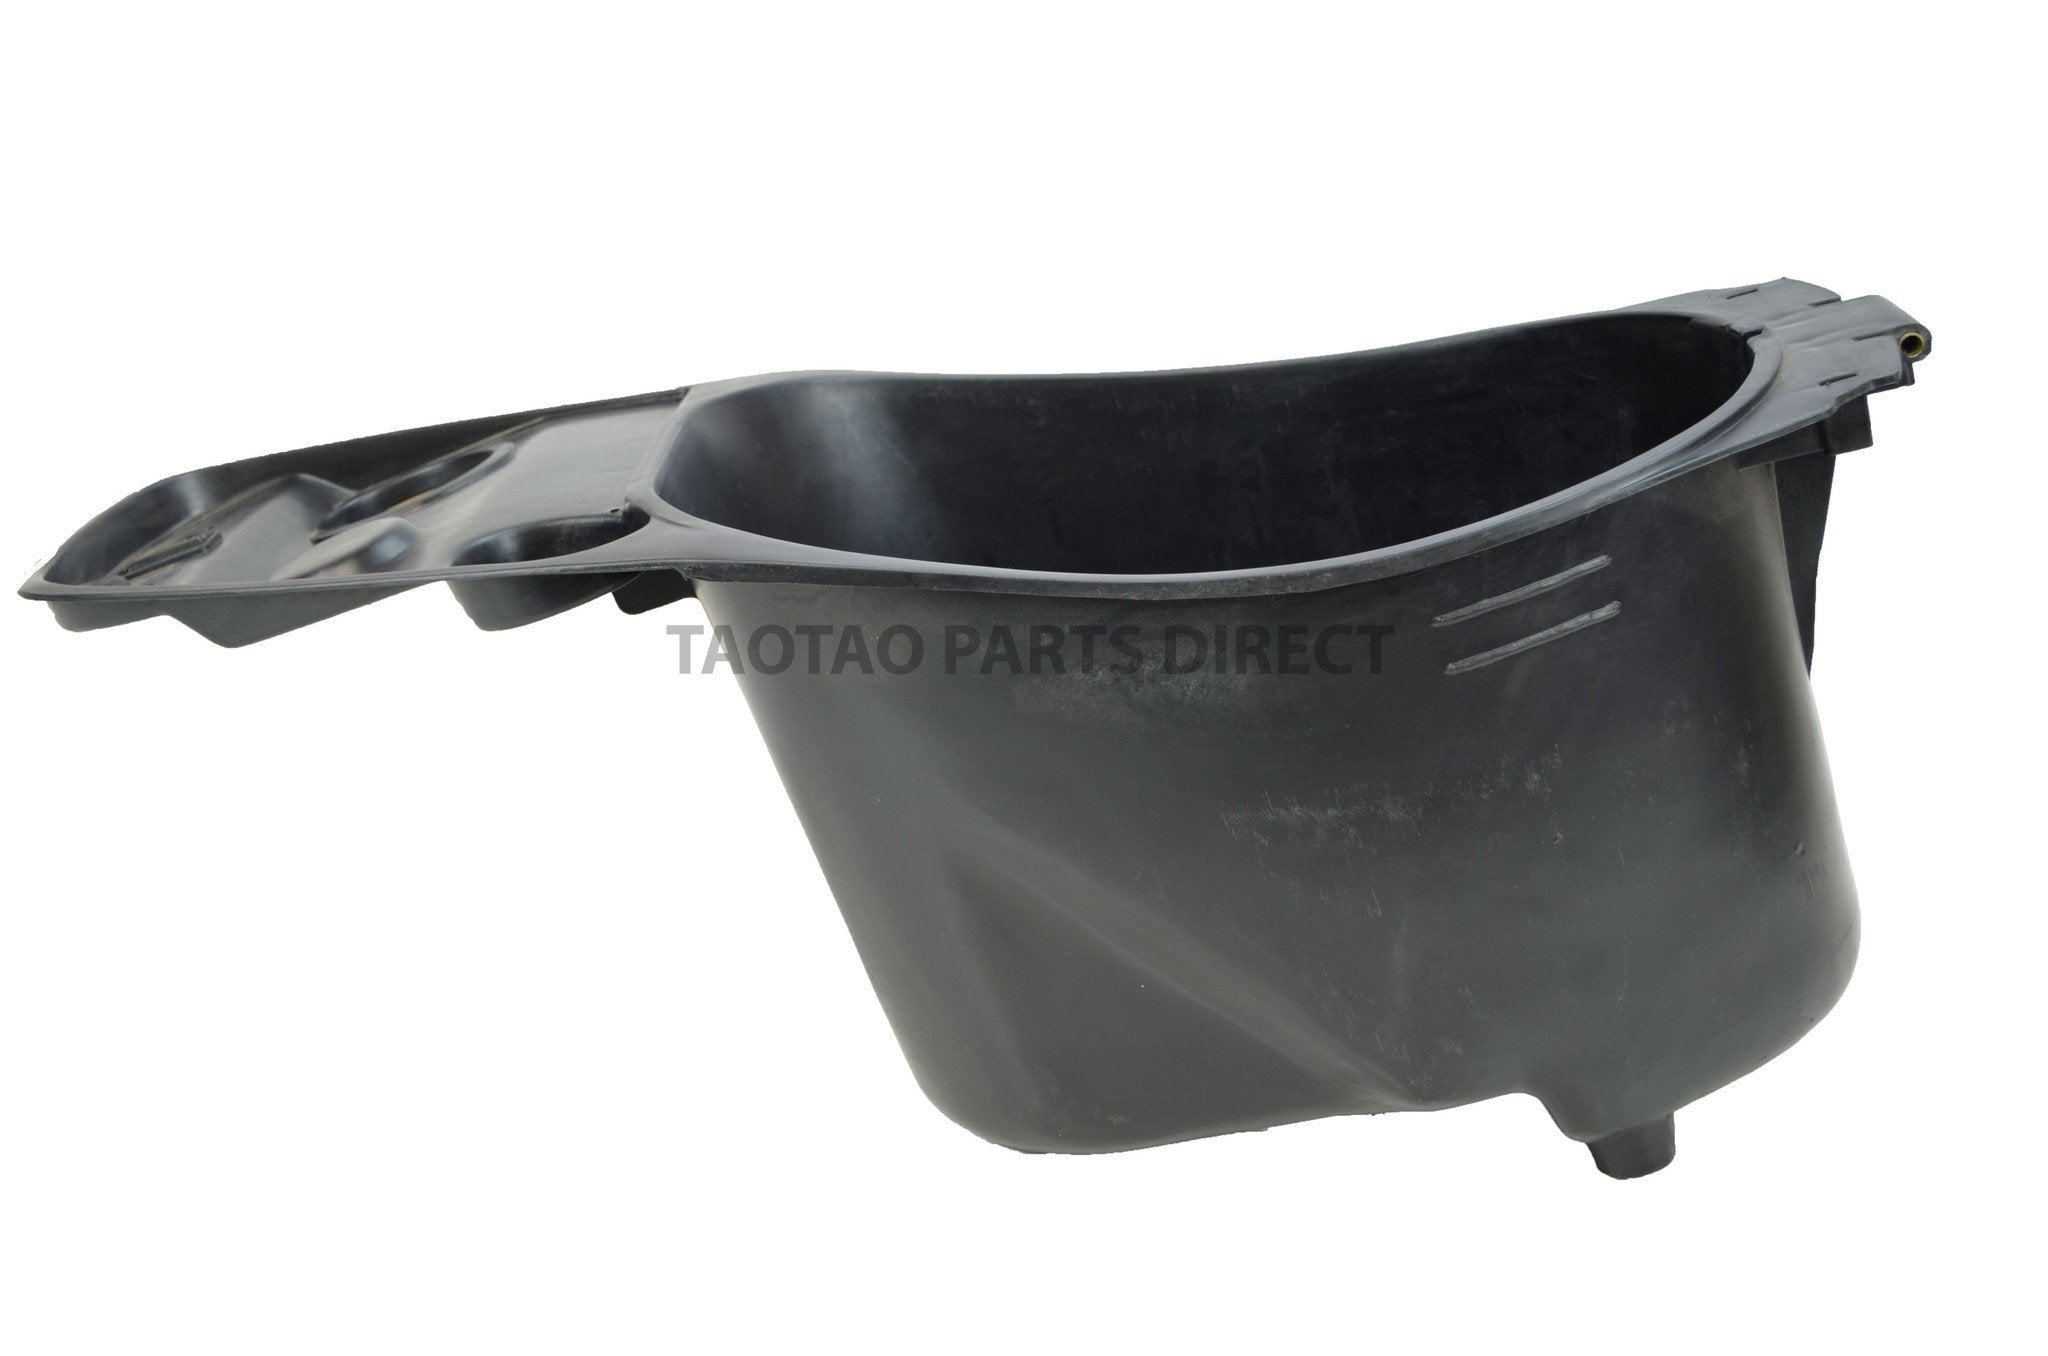 Powermax 150 Seat Storage Bucket - TaoTaoPartsDirect.com